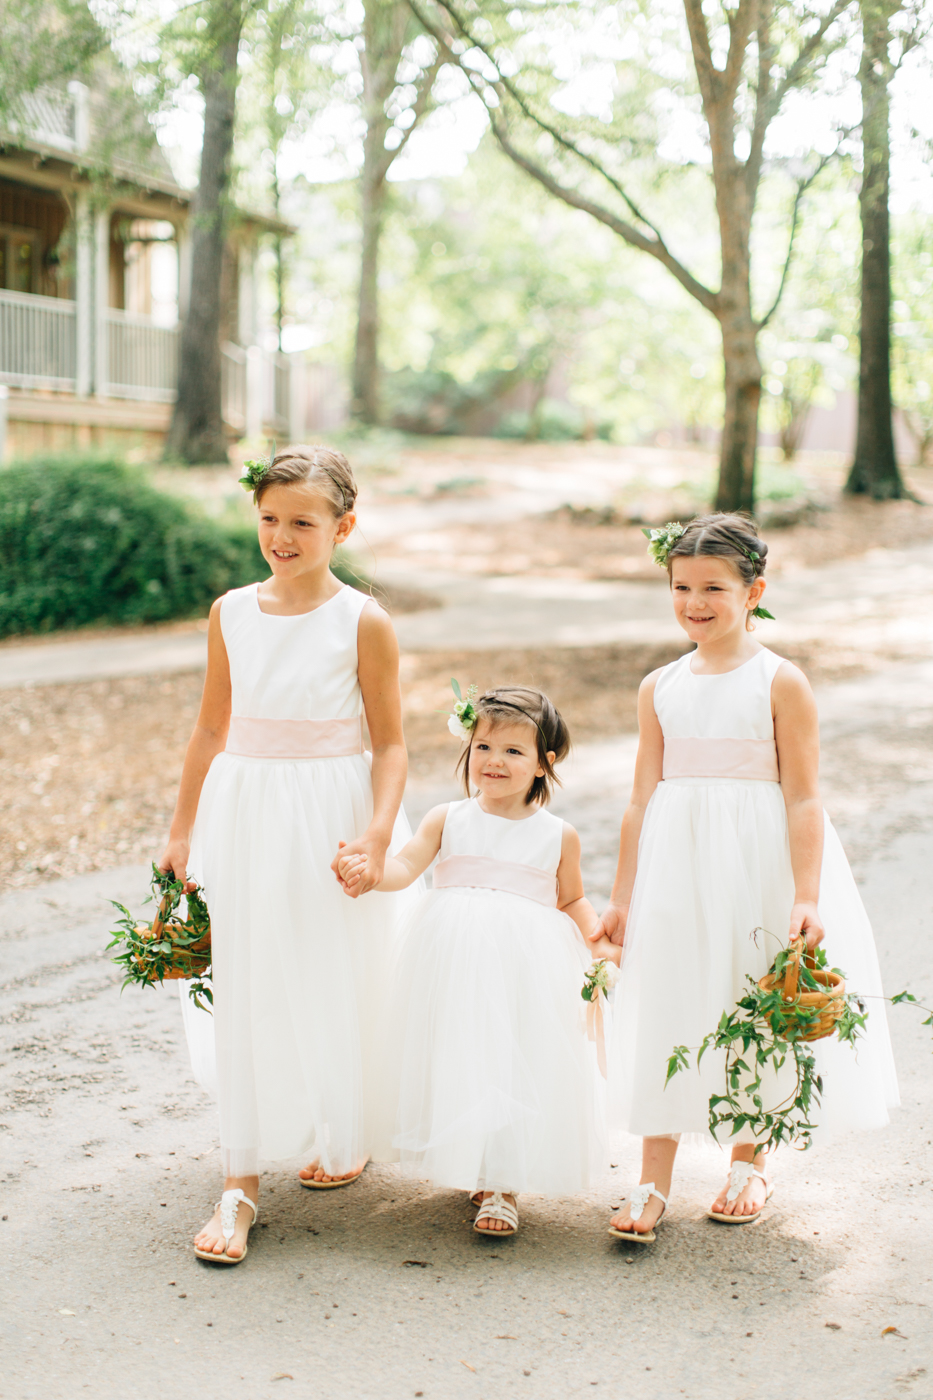 four corners photography best atlanta wedding photographer atlanta wedding barnsley gardens wedding photos flower girls (5 of 9).jpg